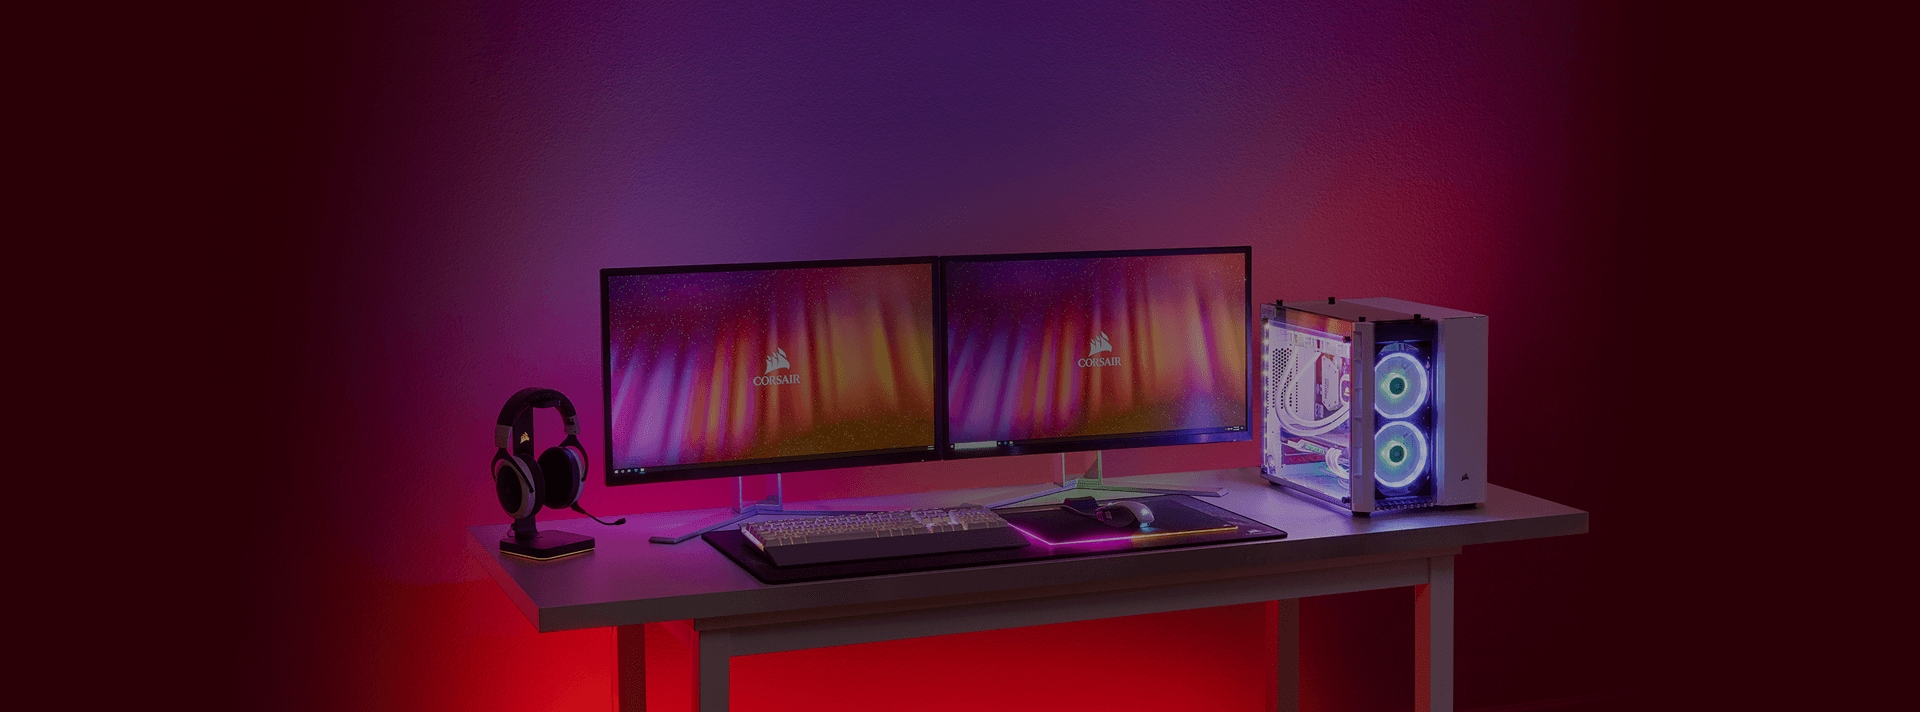 https://www.corsair.com/corsairmedia/sys_master/productcontent/iCue_Section_2.png